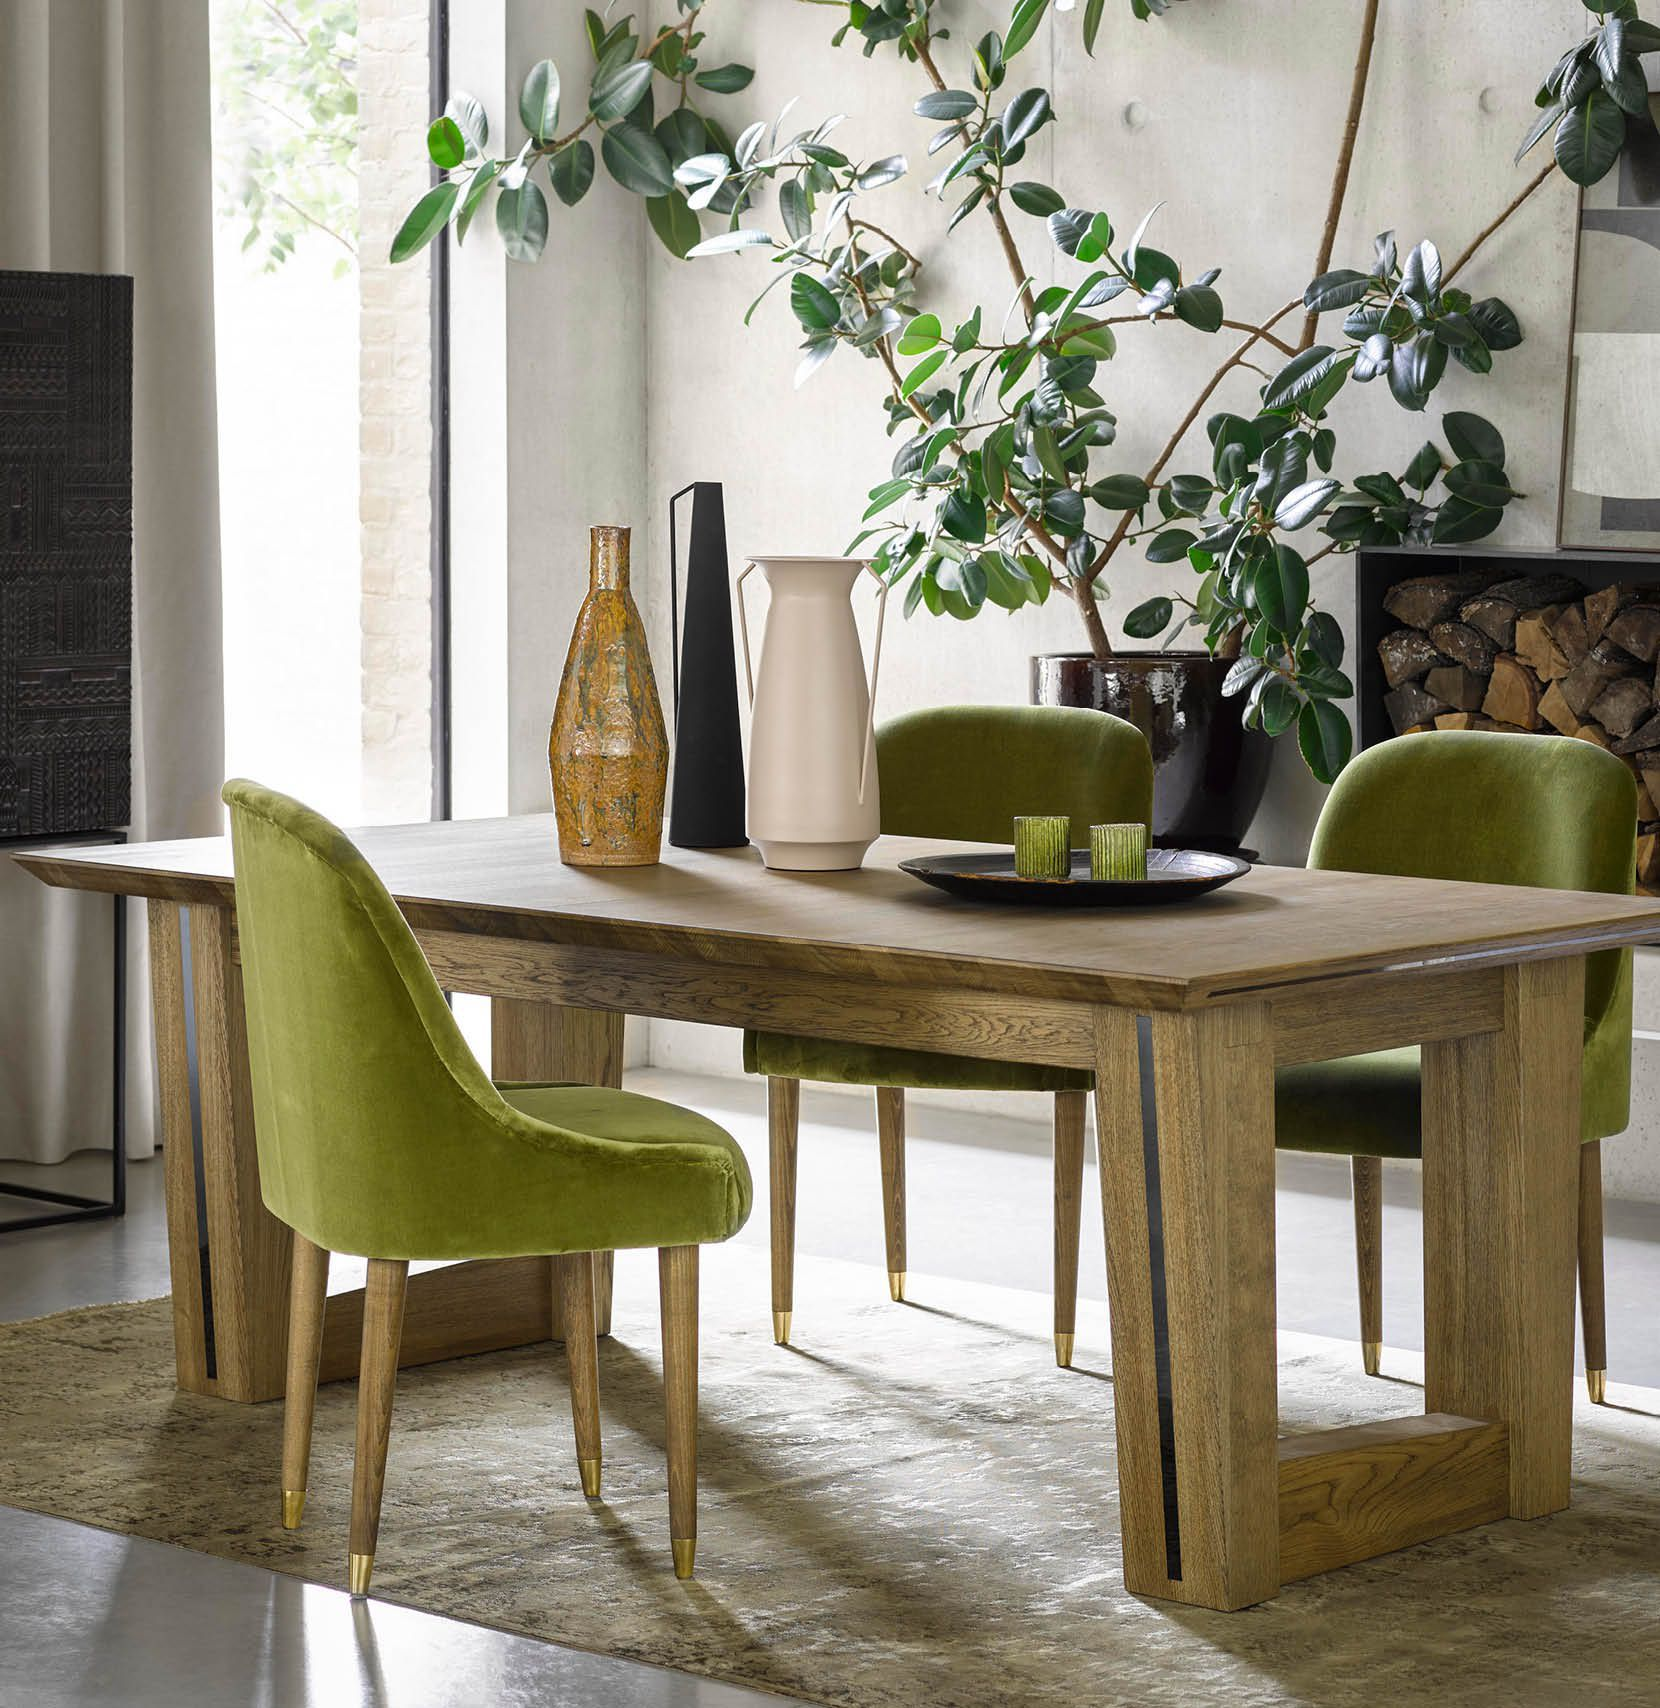 Aspen oak dining table and Arabella dining chairs in olive green velvet fabric furnished in a cosy rustic contemporary living interior